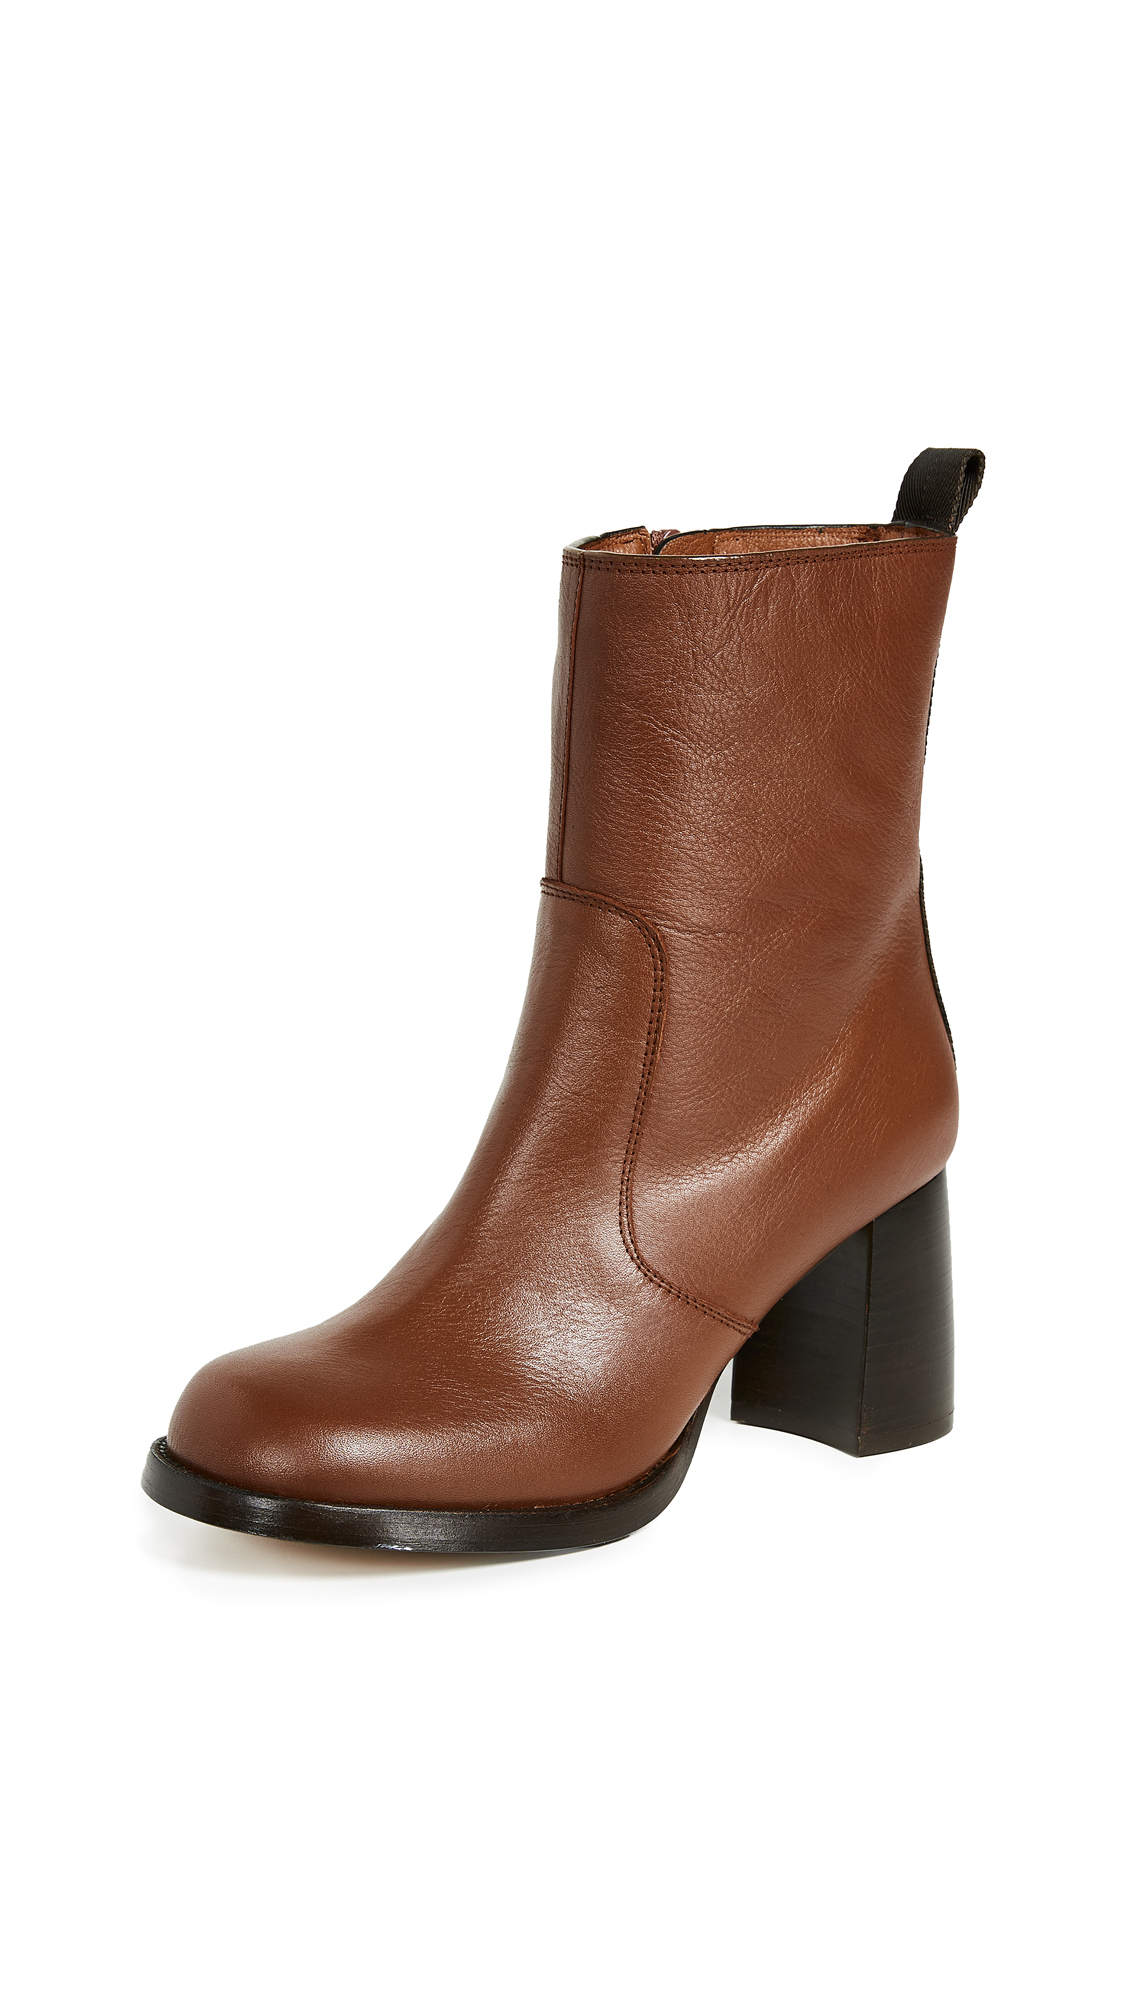 Joseph Dunkenson Short Booties - Brown